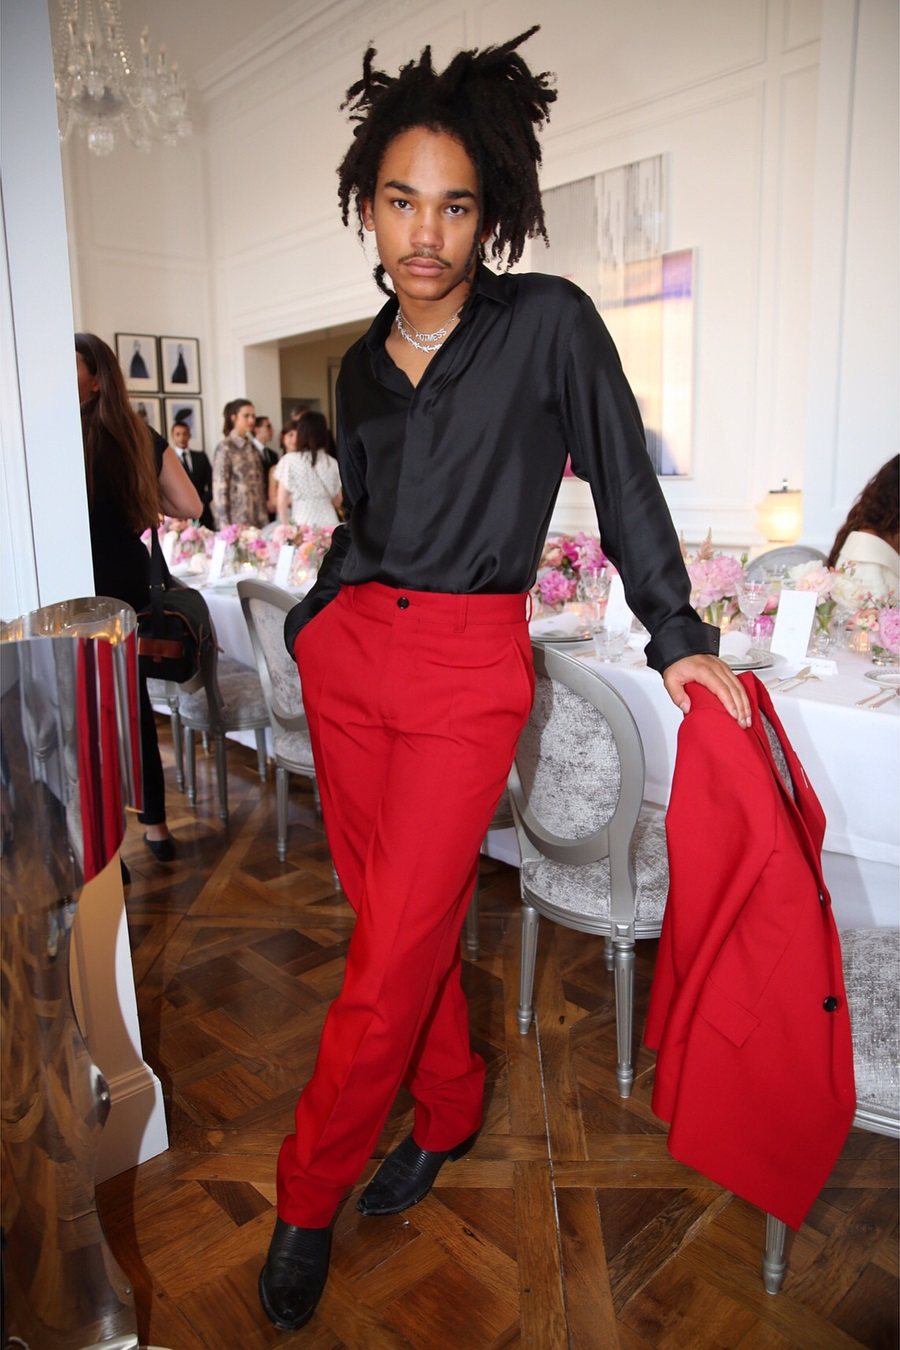 SPOTTED: Luka Sabbat Dresses in Smooth Christian Dior Suit